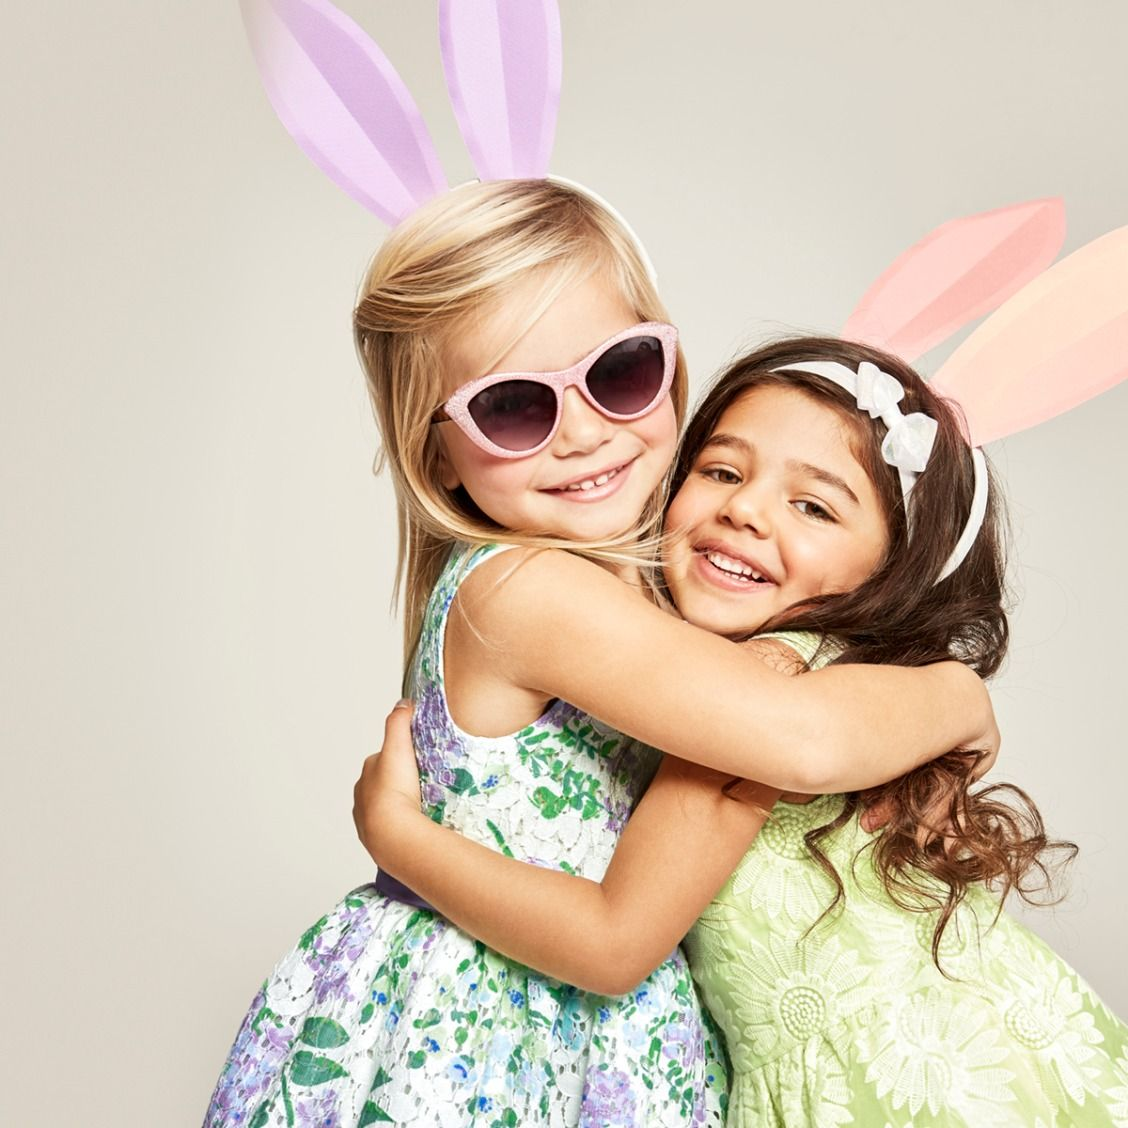 Toddler girls' fashion | Kids' clothes | Easter dresses | Floral lace dress | Headband | Sunglasses | The Children's Place